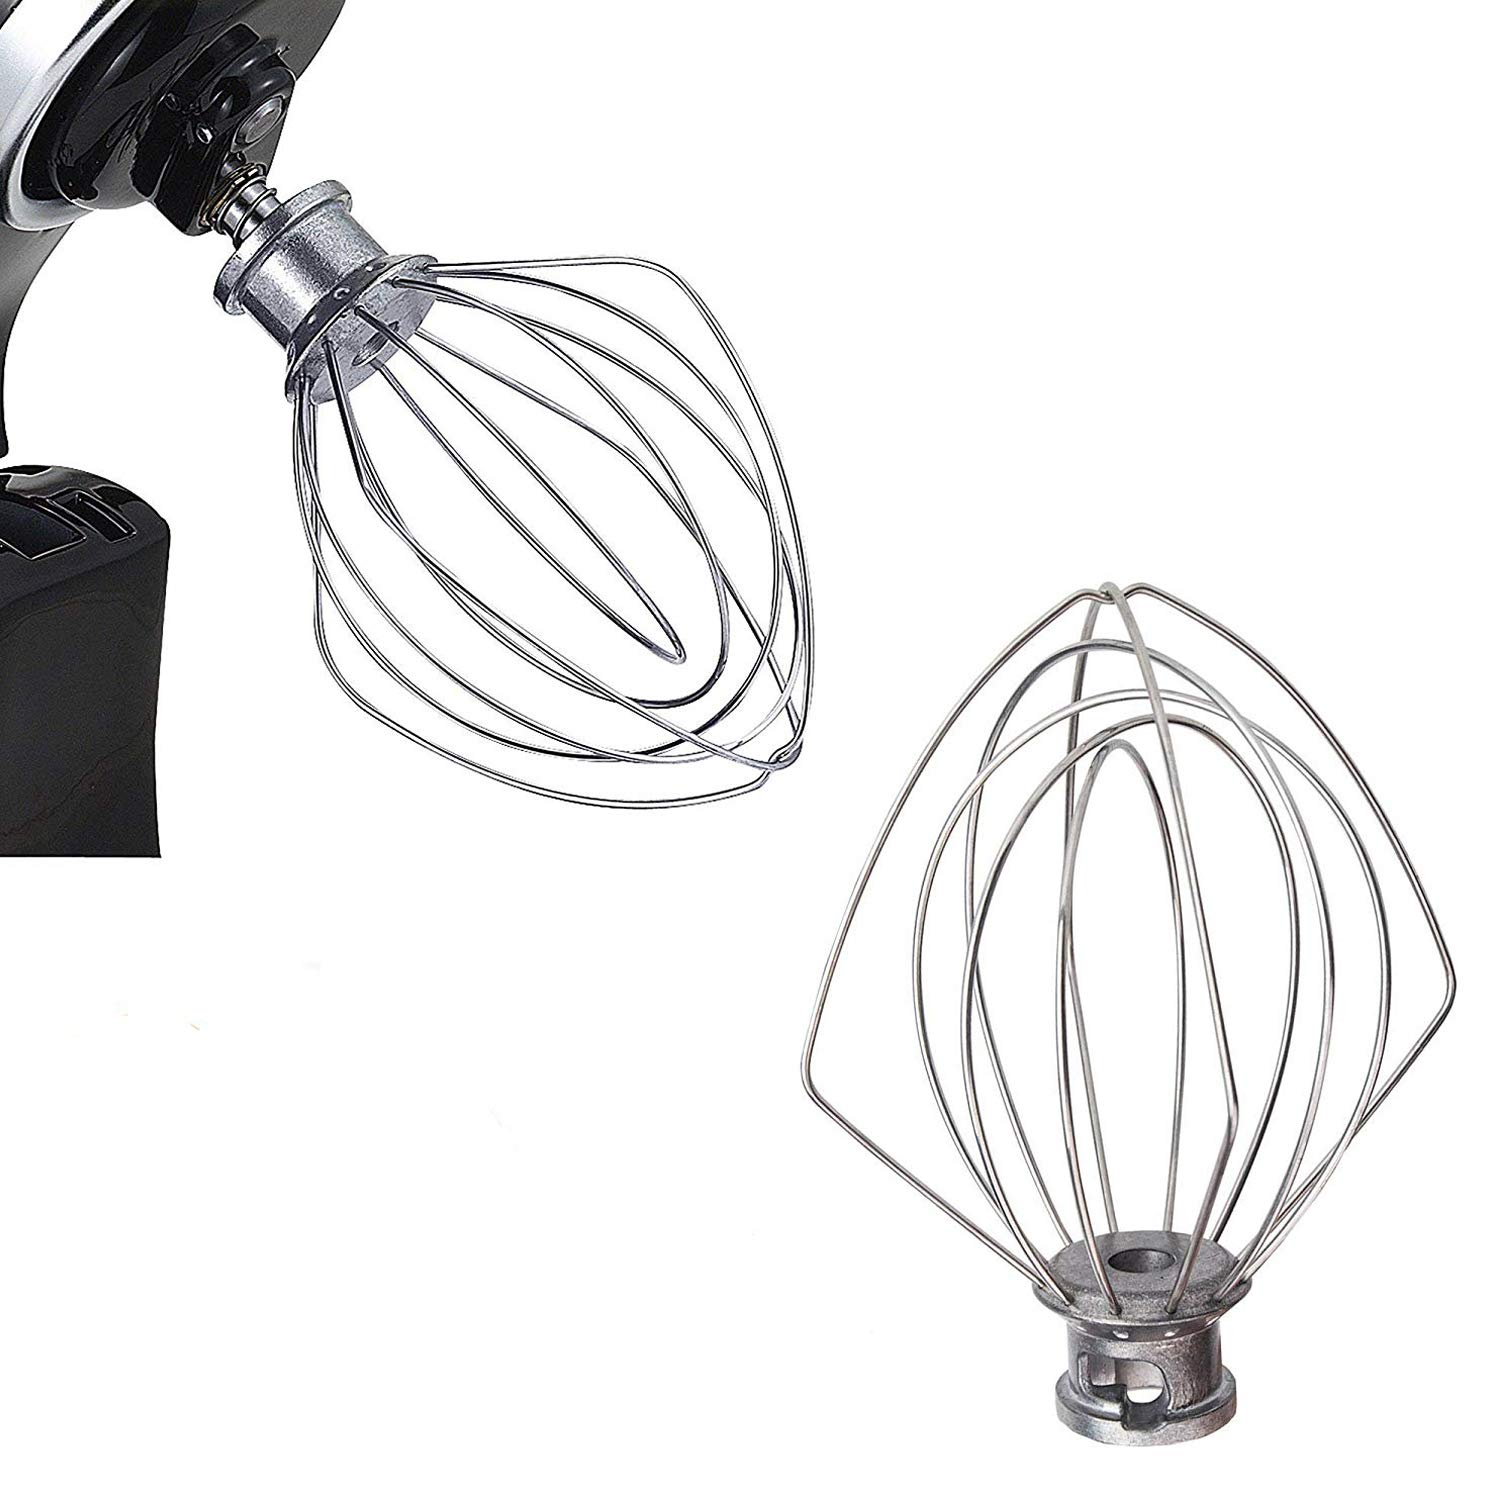 Ketofa K45WW Wire Whip Stand Mixer Compatible Kitchen Aid, Stainless Stirrer Ballon Whisk